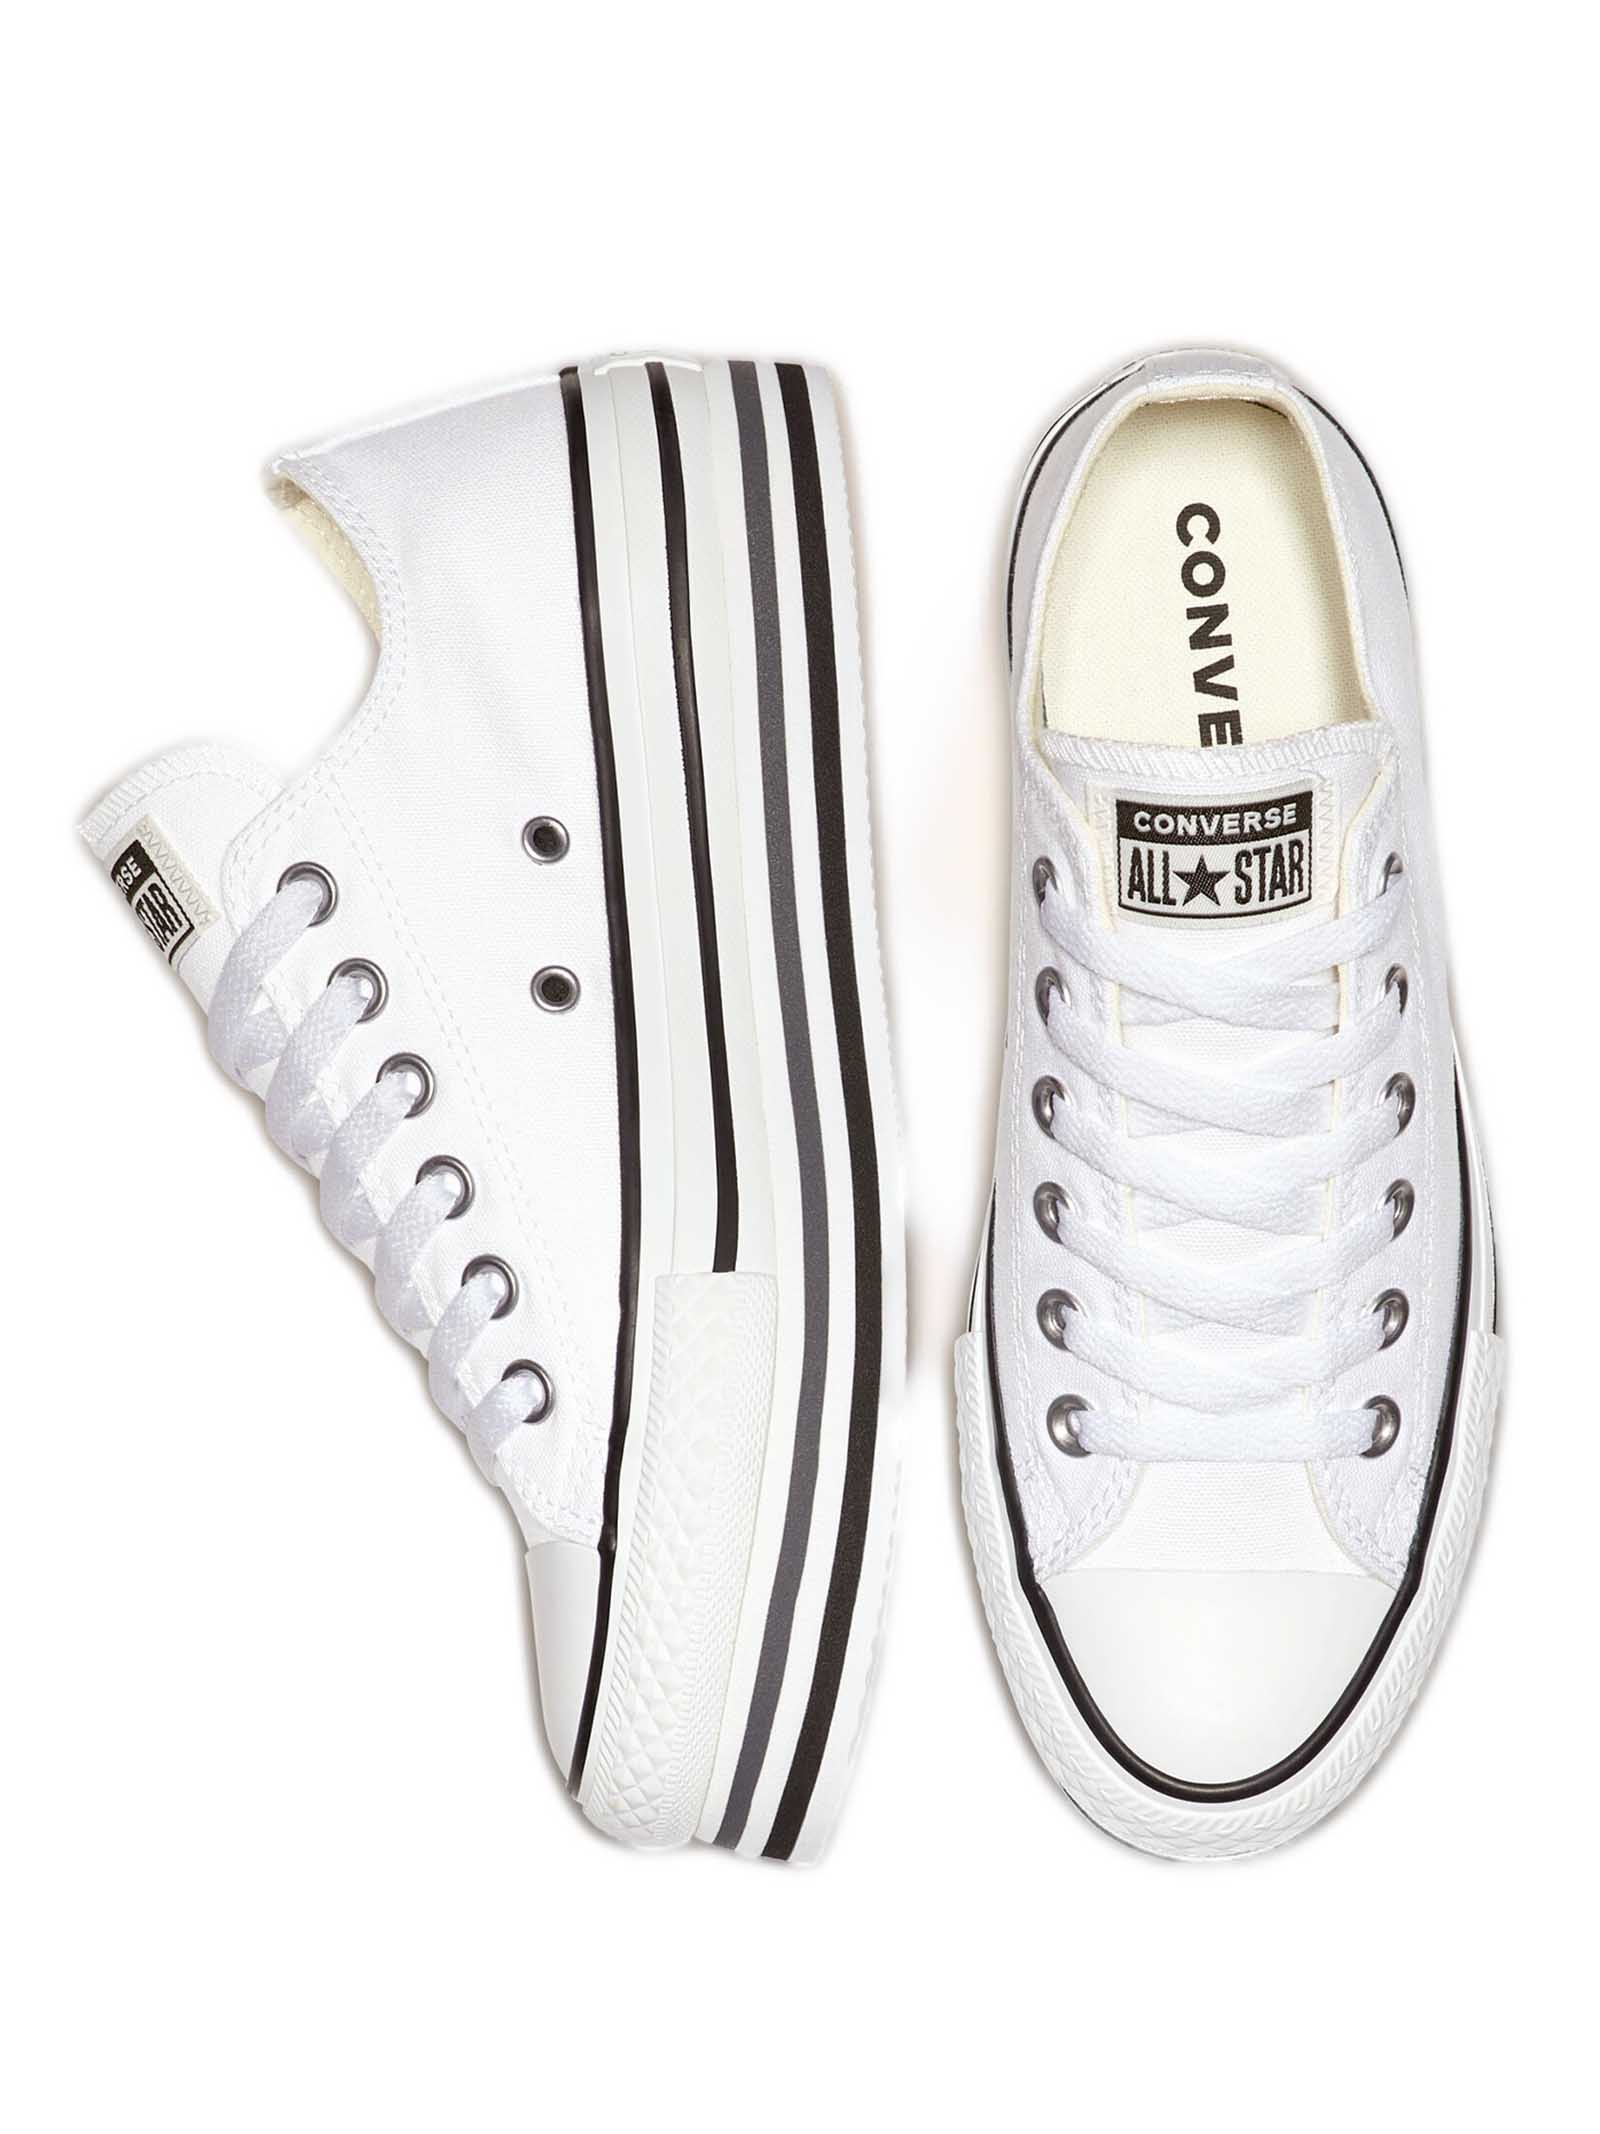 Women's Sneakers Chuck Taylor Platform in Canvas White and Wedge Sole Converse   Sneakers   CHUCK TAYLOR563971C